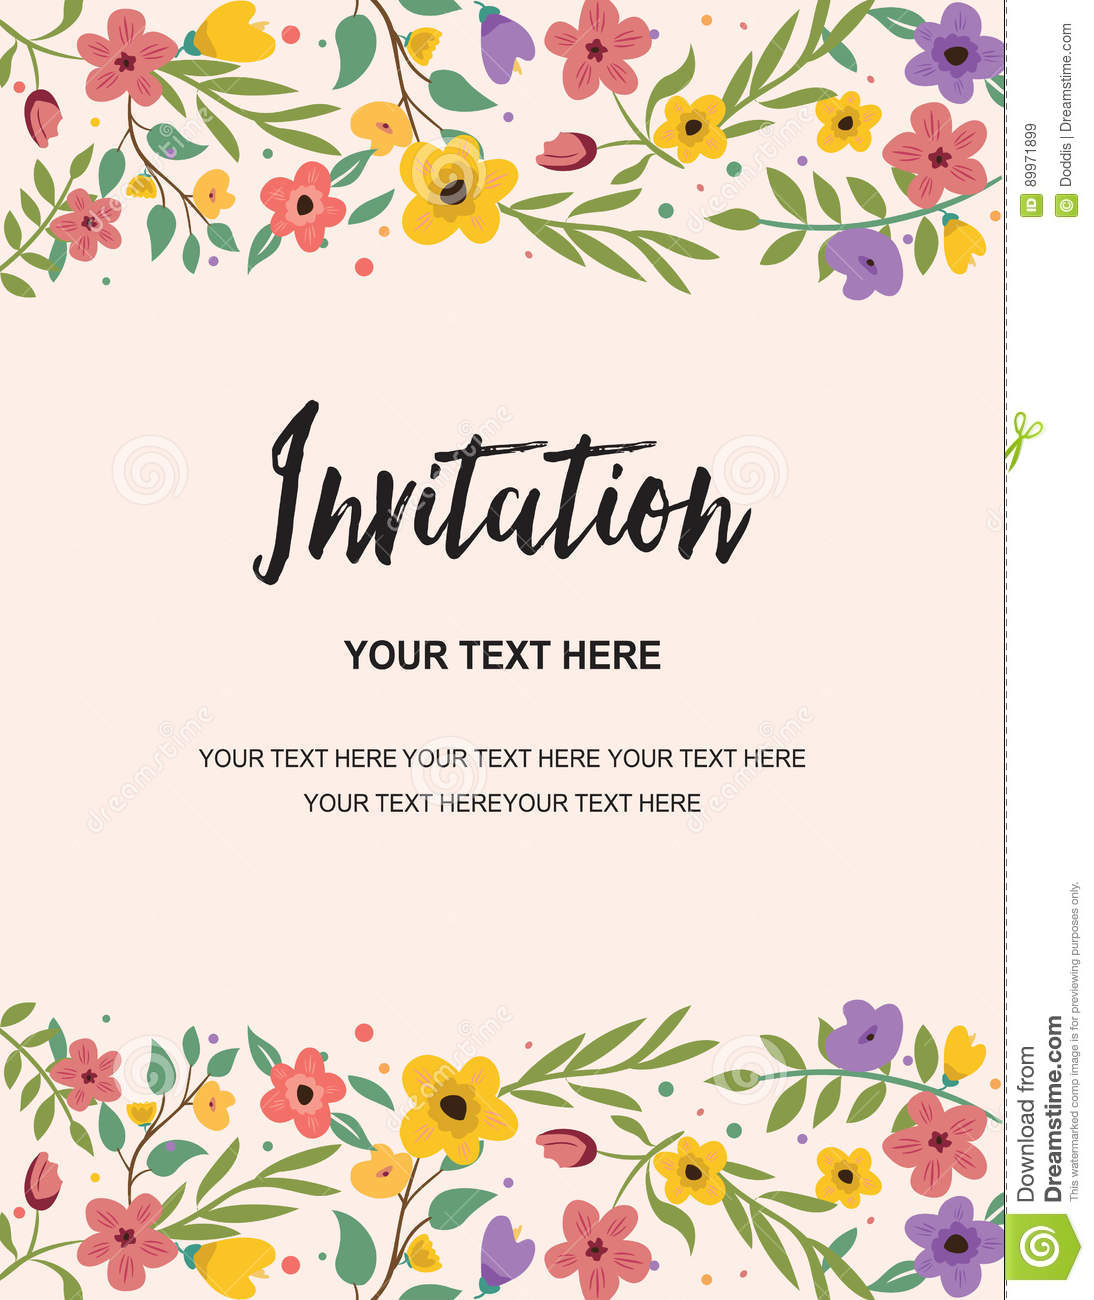 Wedding party and anniversary invitation card template colorful download wedding party and anniversary invitation card template colorful floral illustration vector creative design stock stopboris Choice Image